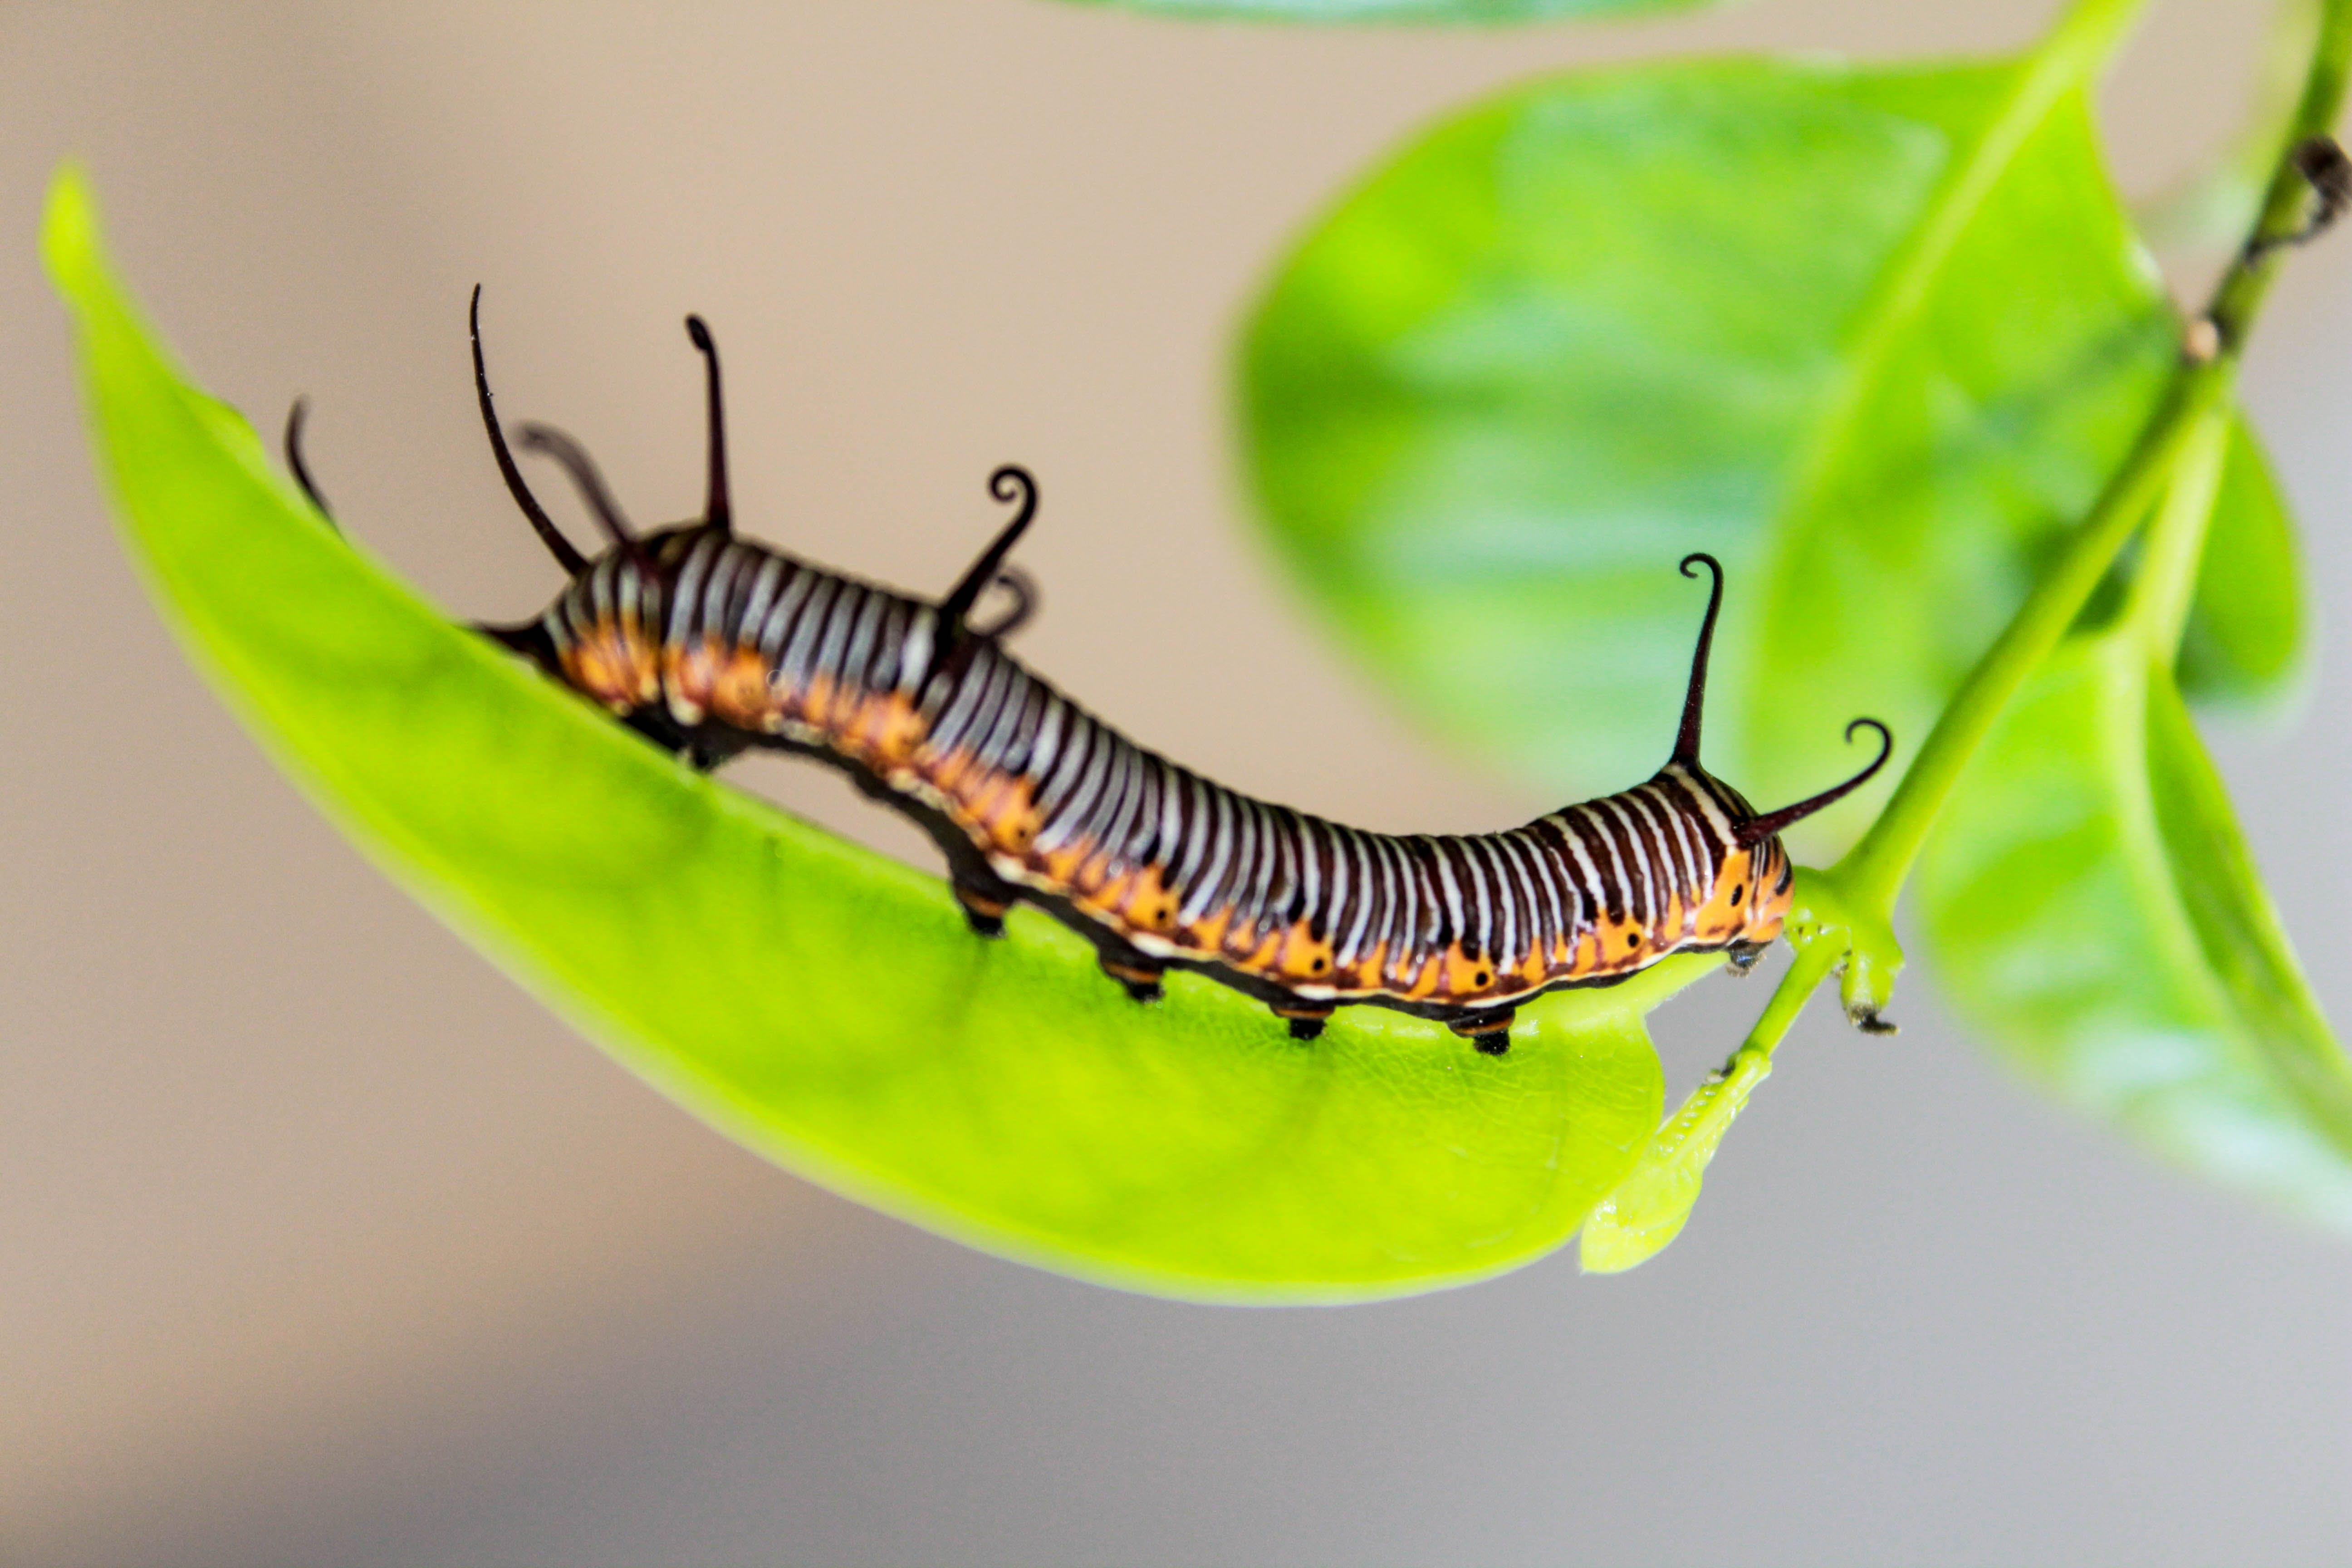 Black and White Caterpillar on Green Leaf